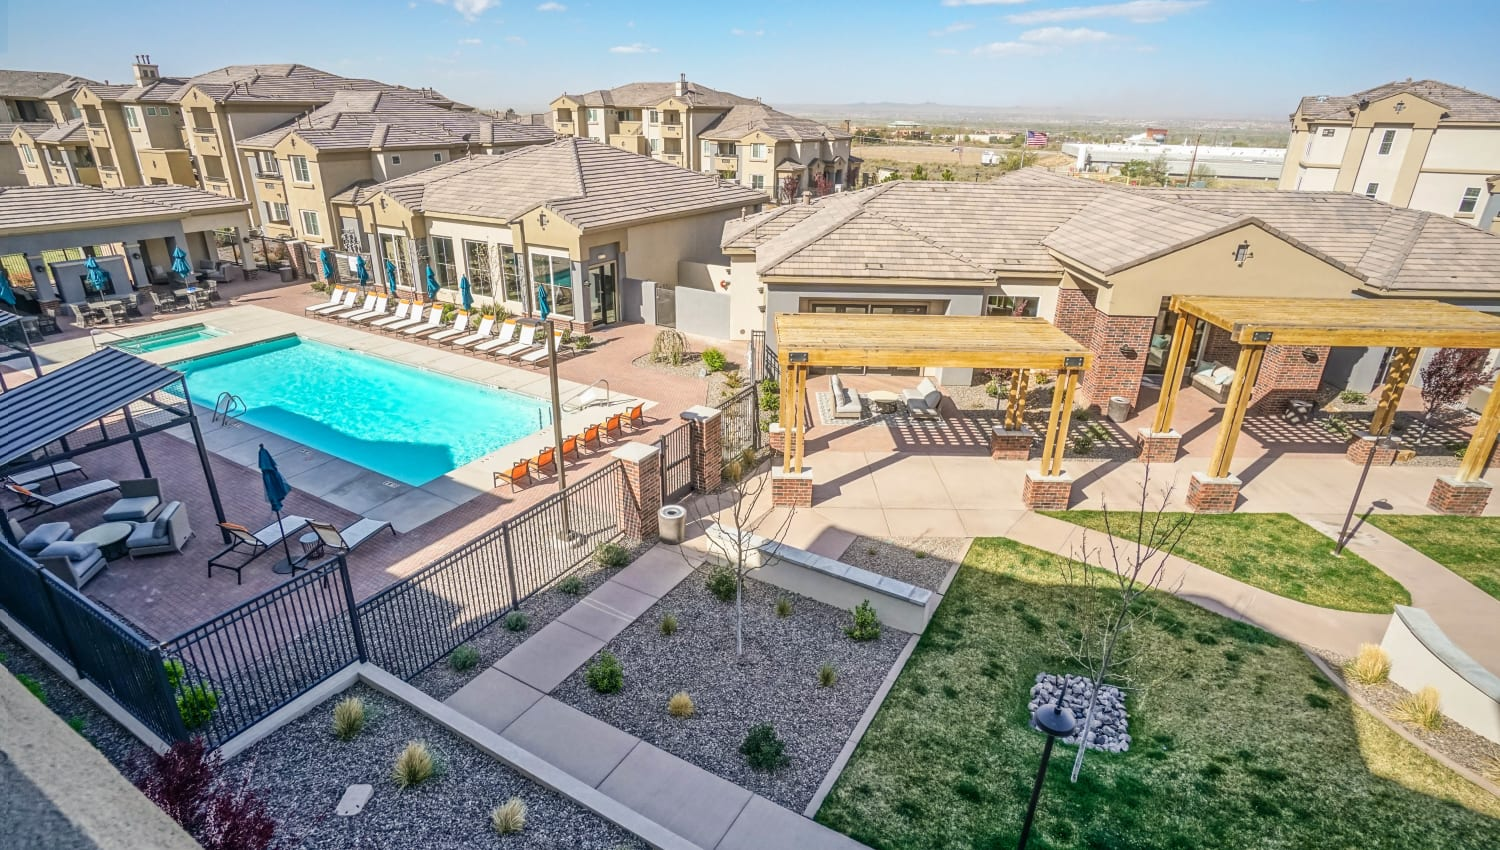 Low aerial view of the community at Olympus Northpoint in Albuquerque, New Mexico